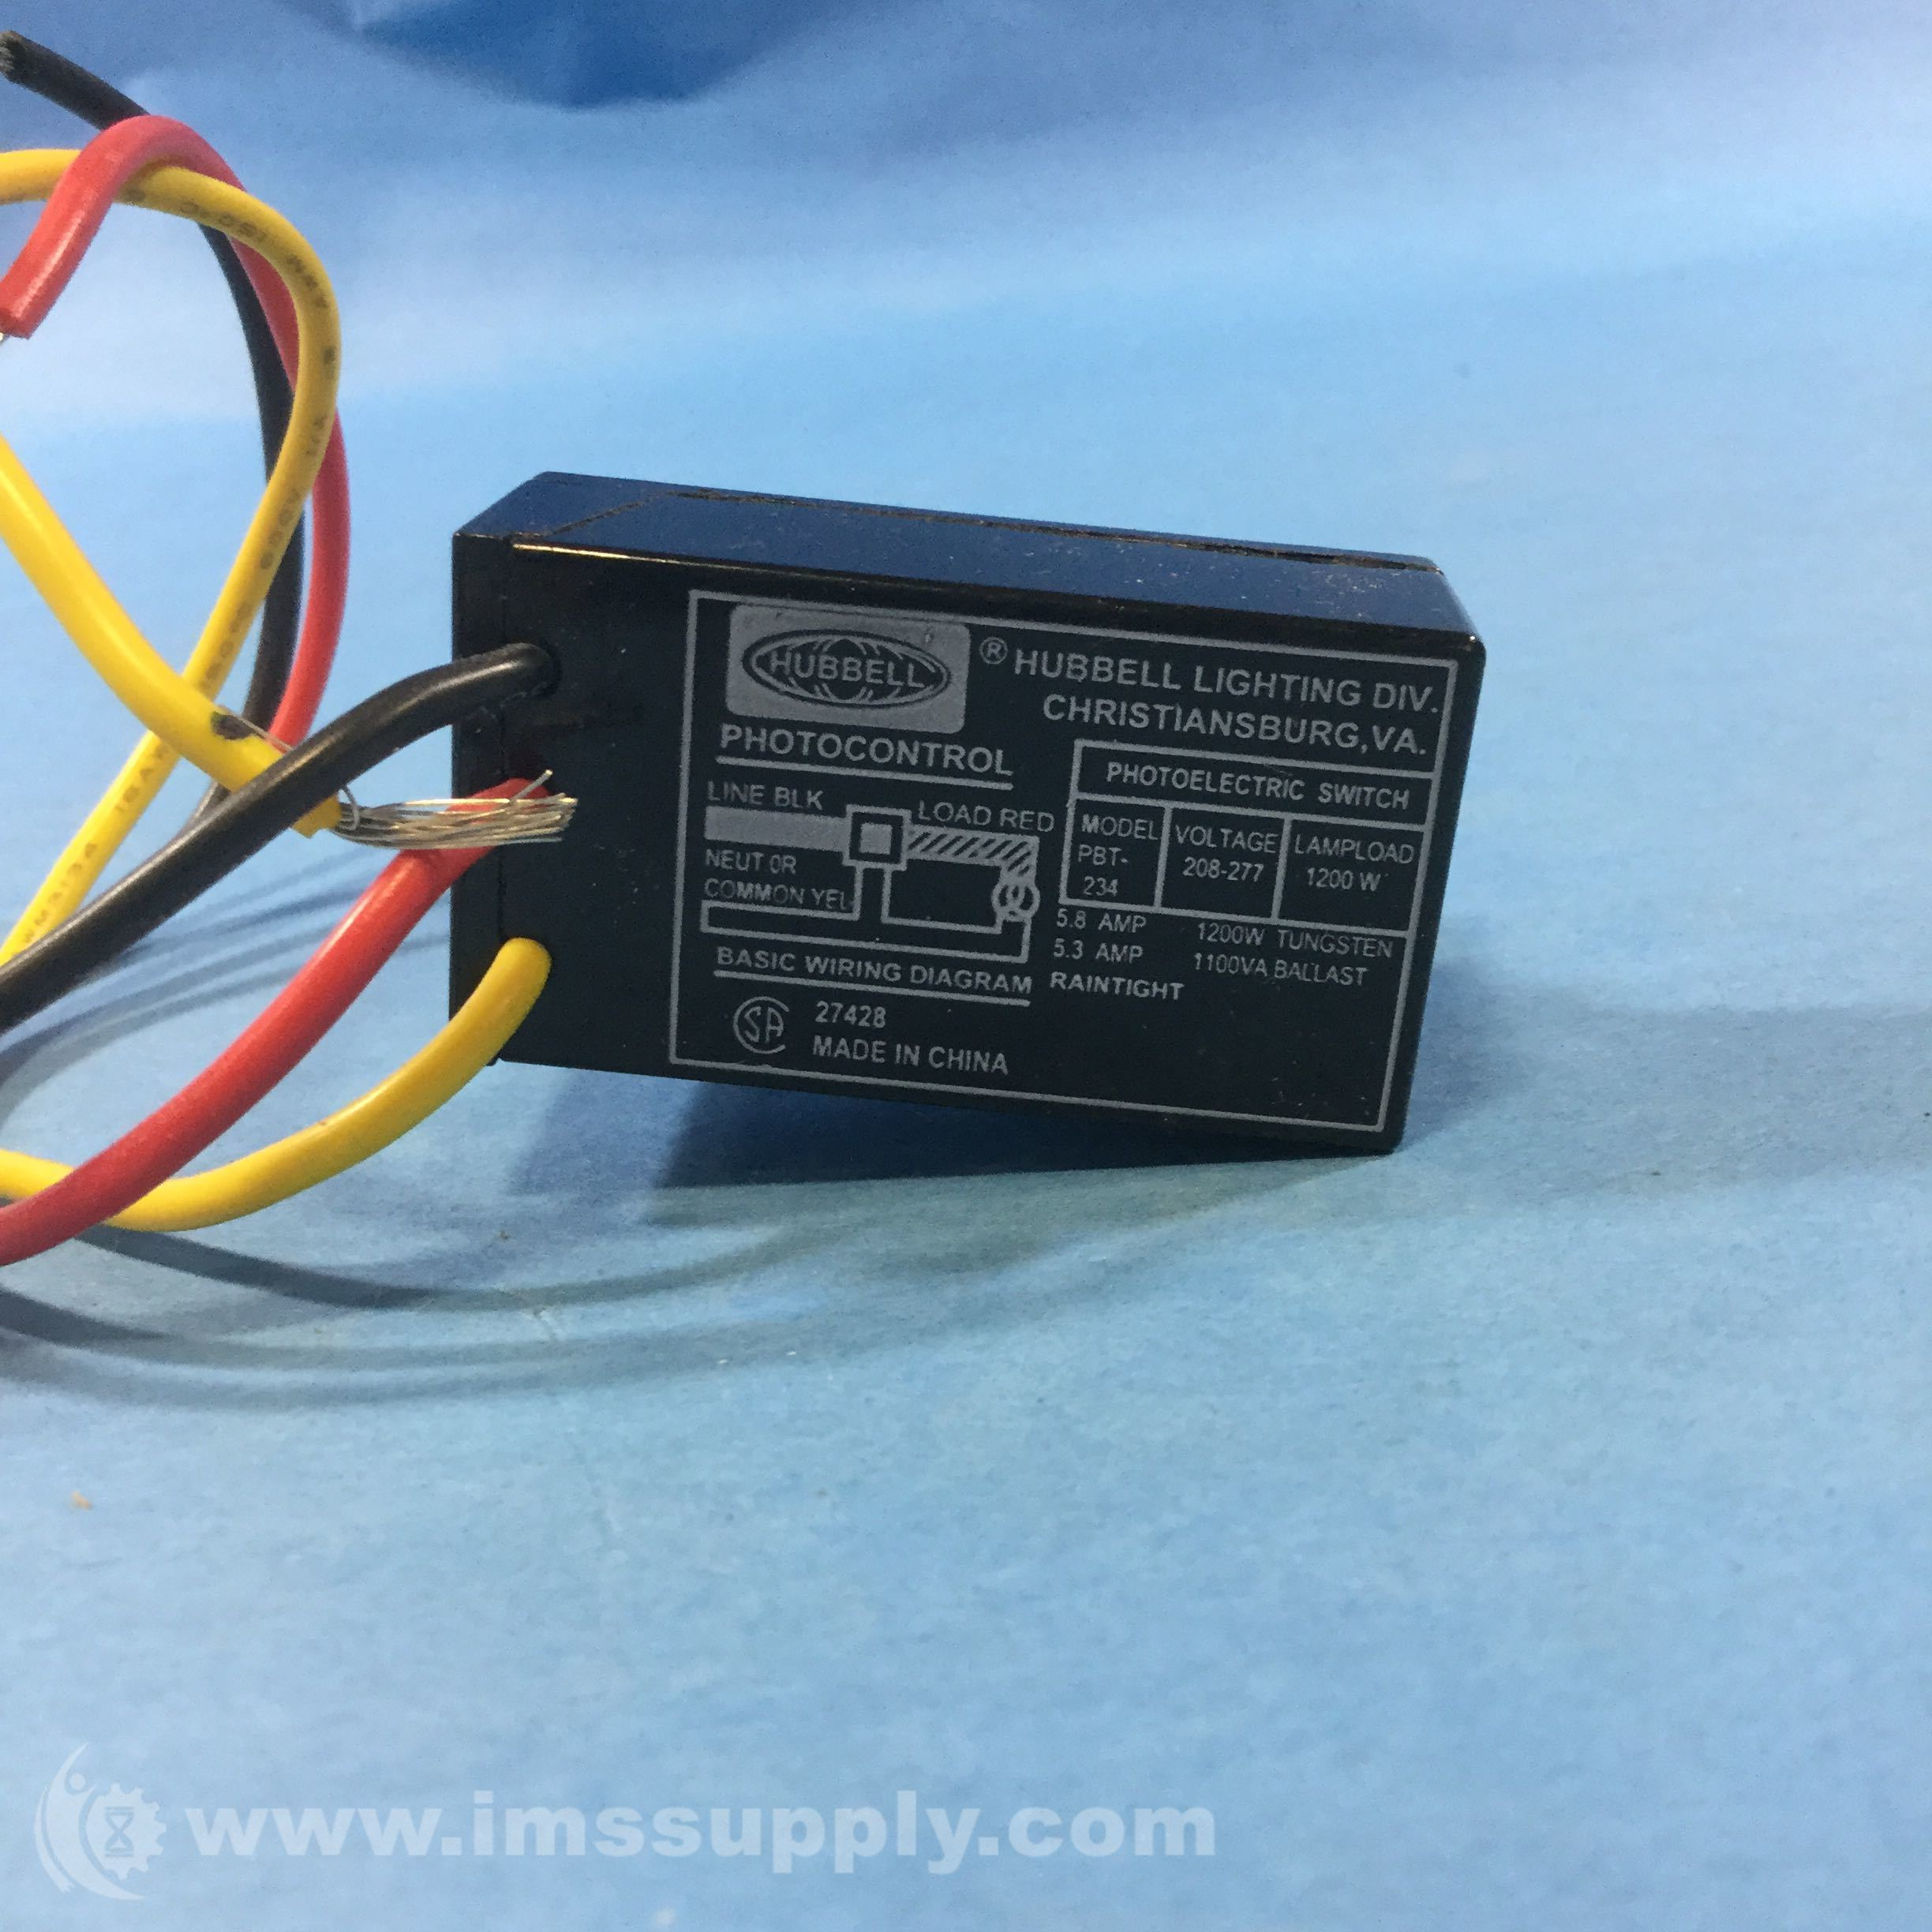 208 277 Photocell Wiring Diagram Modern Design Of Electronic Load Circuit Hubbel Pbt 234 Sensor Button 240 Volt Ims Supply Rh Imssupply Com Directions 3 Wire